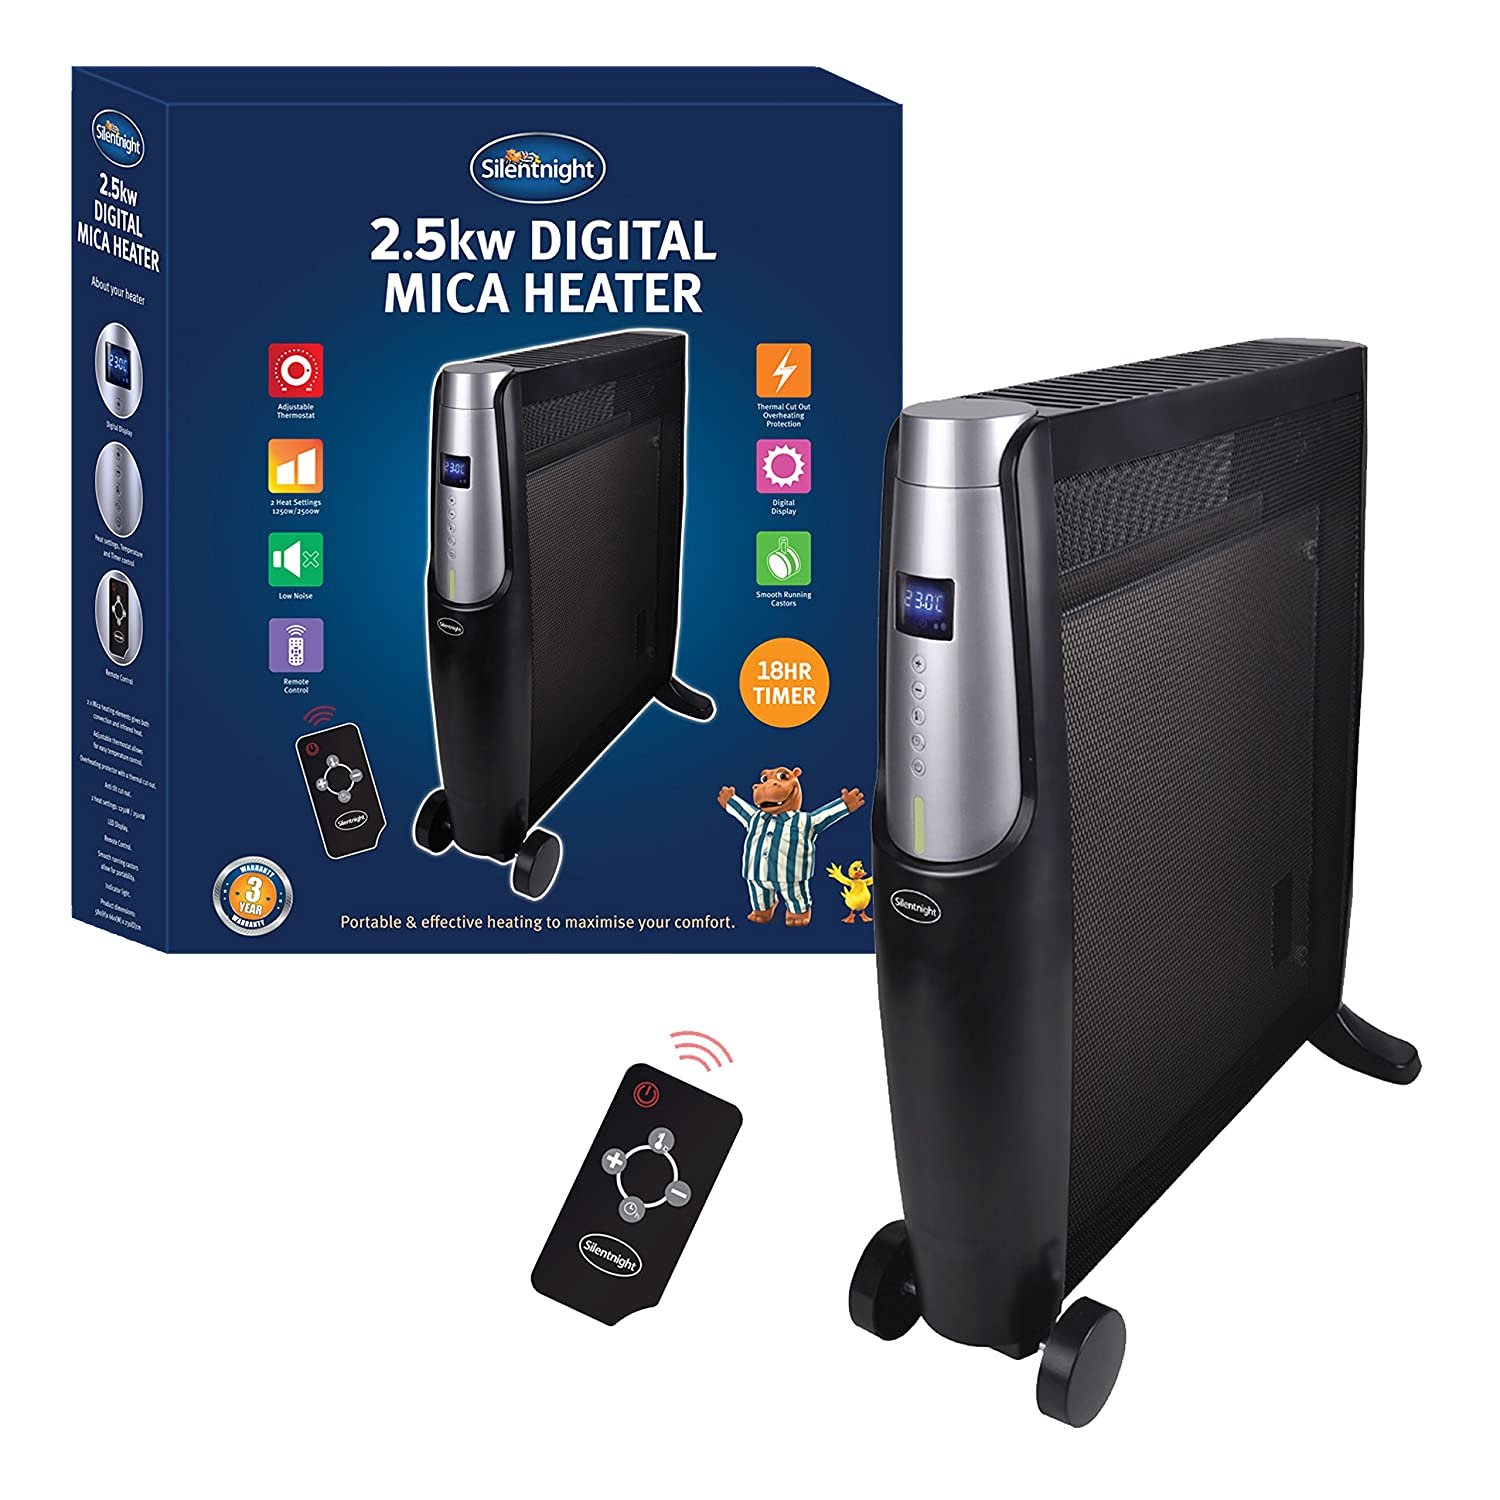 SILENTNIGHT Digital Mica Heater, 2500 Watt, Black, with Remote Control, heats up in 60 seconds, Oil Free Benross Group 38100